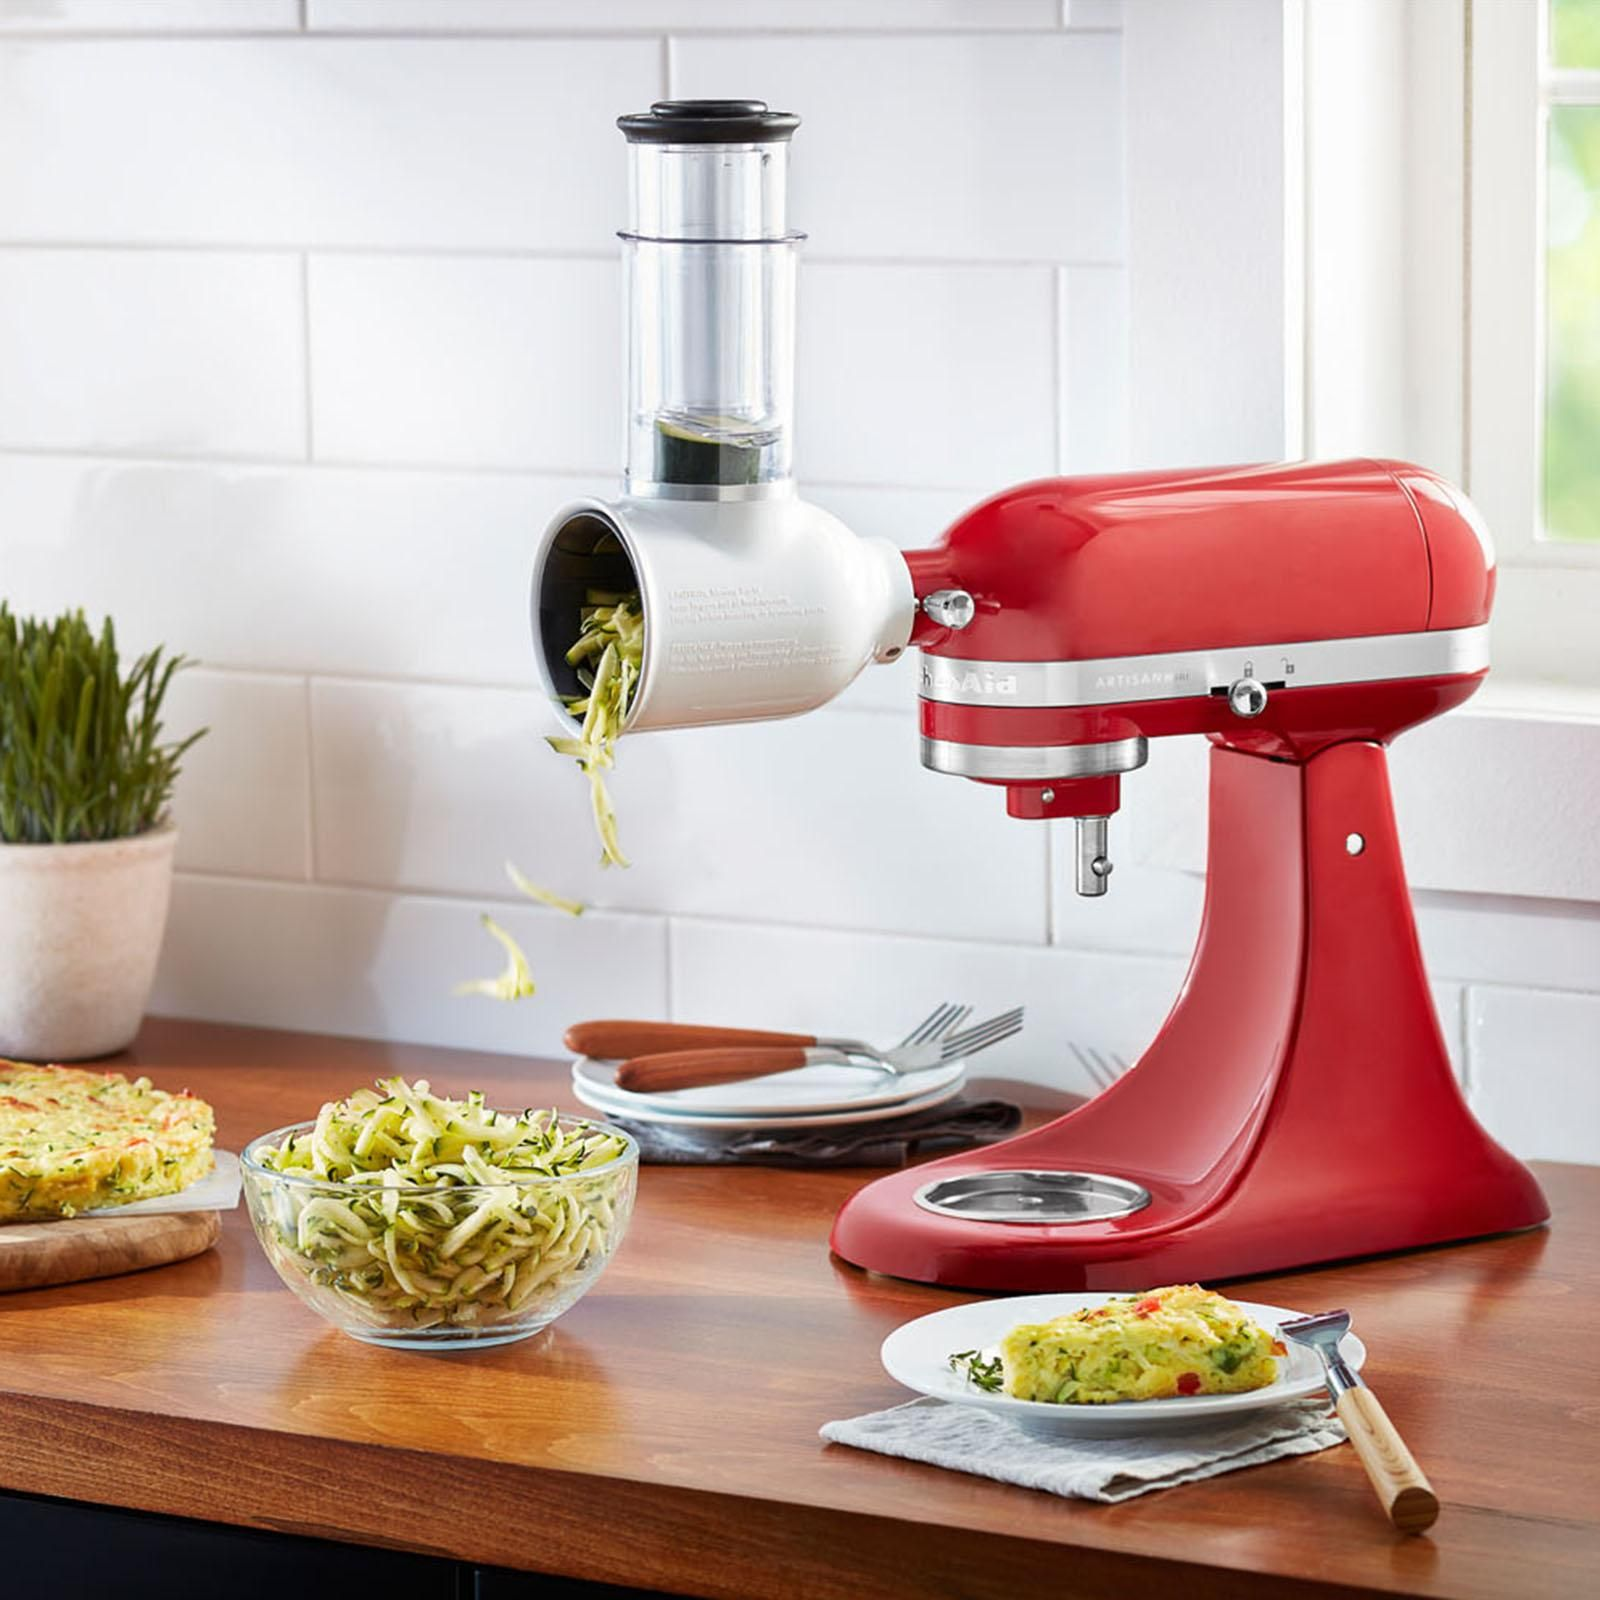 The Kitchenaid Fresh Prep Slicer Shredder Attachment Quickly And Easily Attaches Directly To The Power Hub Of Kitchen Aid Versatile Kitchen Kitchen Necessities